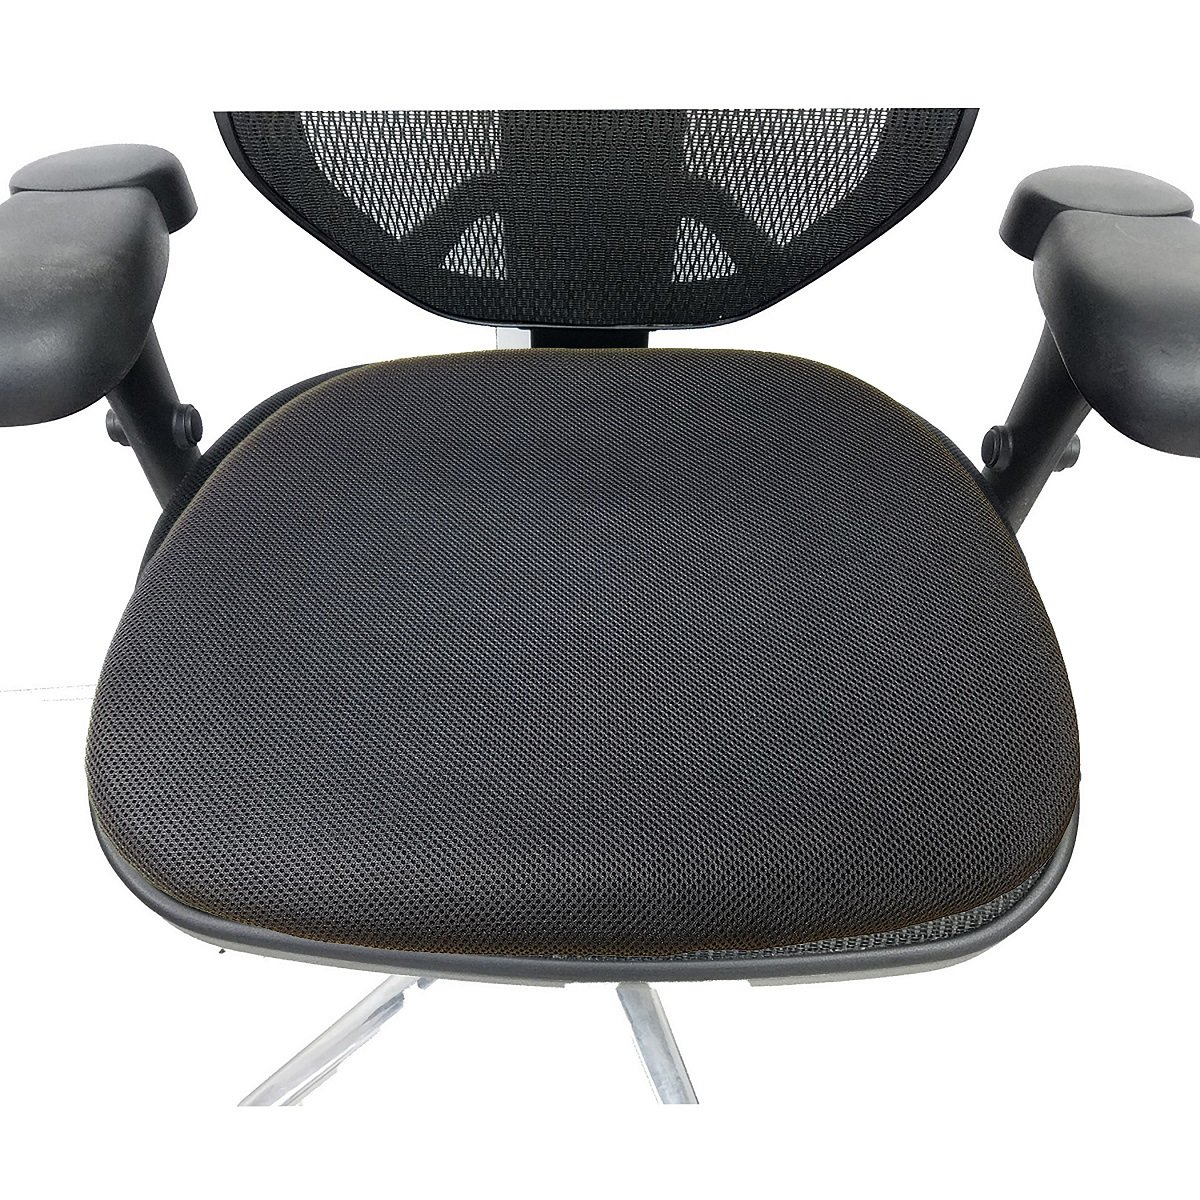 CONFORMAX ERA Office Gel SEAT CUSHION-L20A (20Lx20FWx14RW, with Removable Cover-AIRMAX)